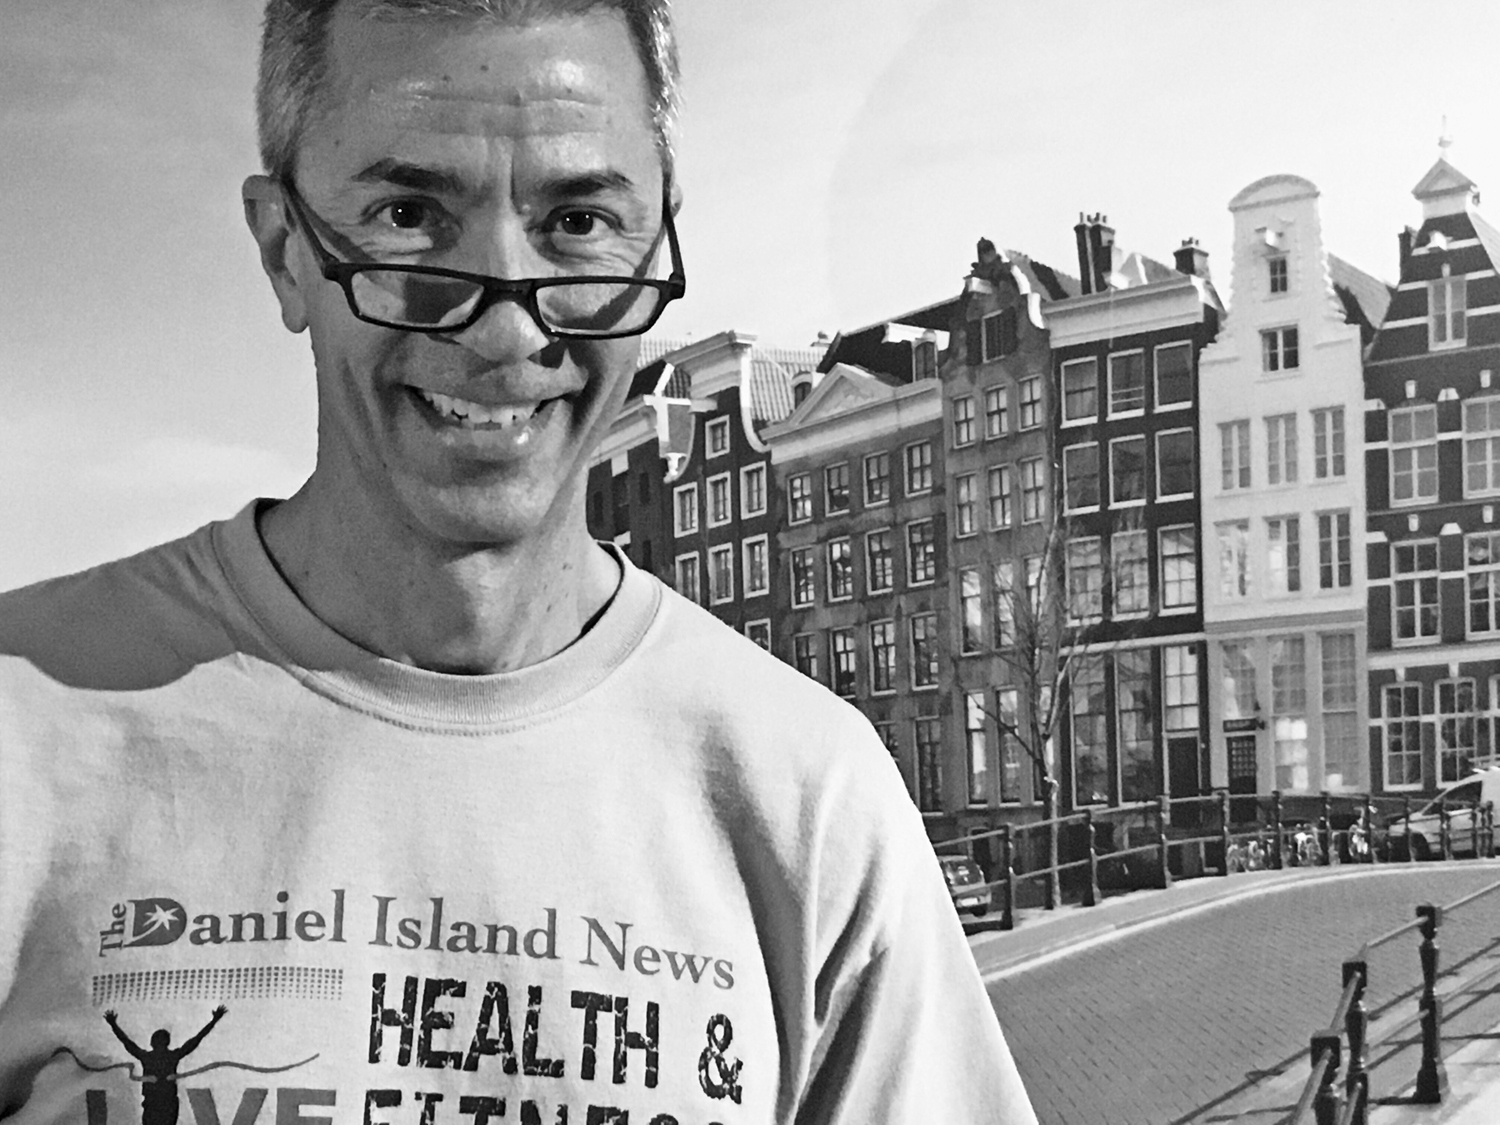 Frank Wells proudly donned a Daniel Island News shirt while visiting Amsterdam recently!